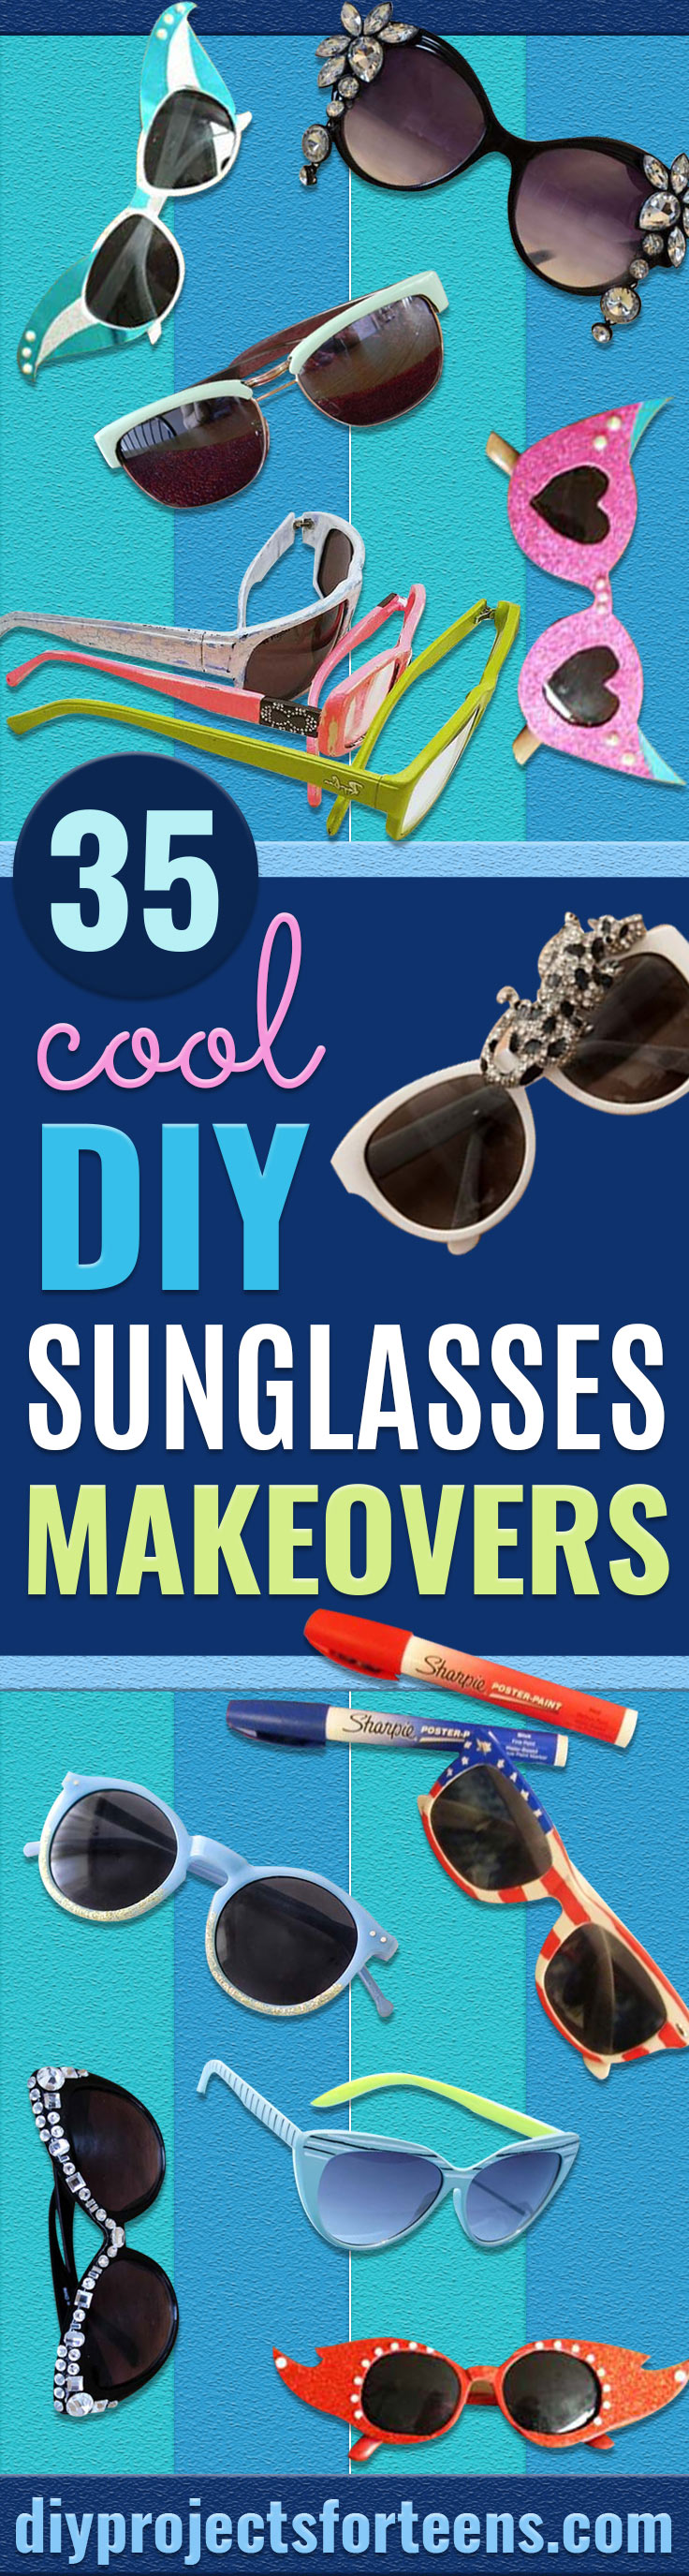 DIY Sunglasses Makeovers - Fun Ways to Decorate and Embellish Sunglasses - Embroider, Paint, Add Jewels and Glitter to Your Shades - Cheap and Easy Projects and Crafts for Teens